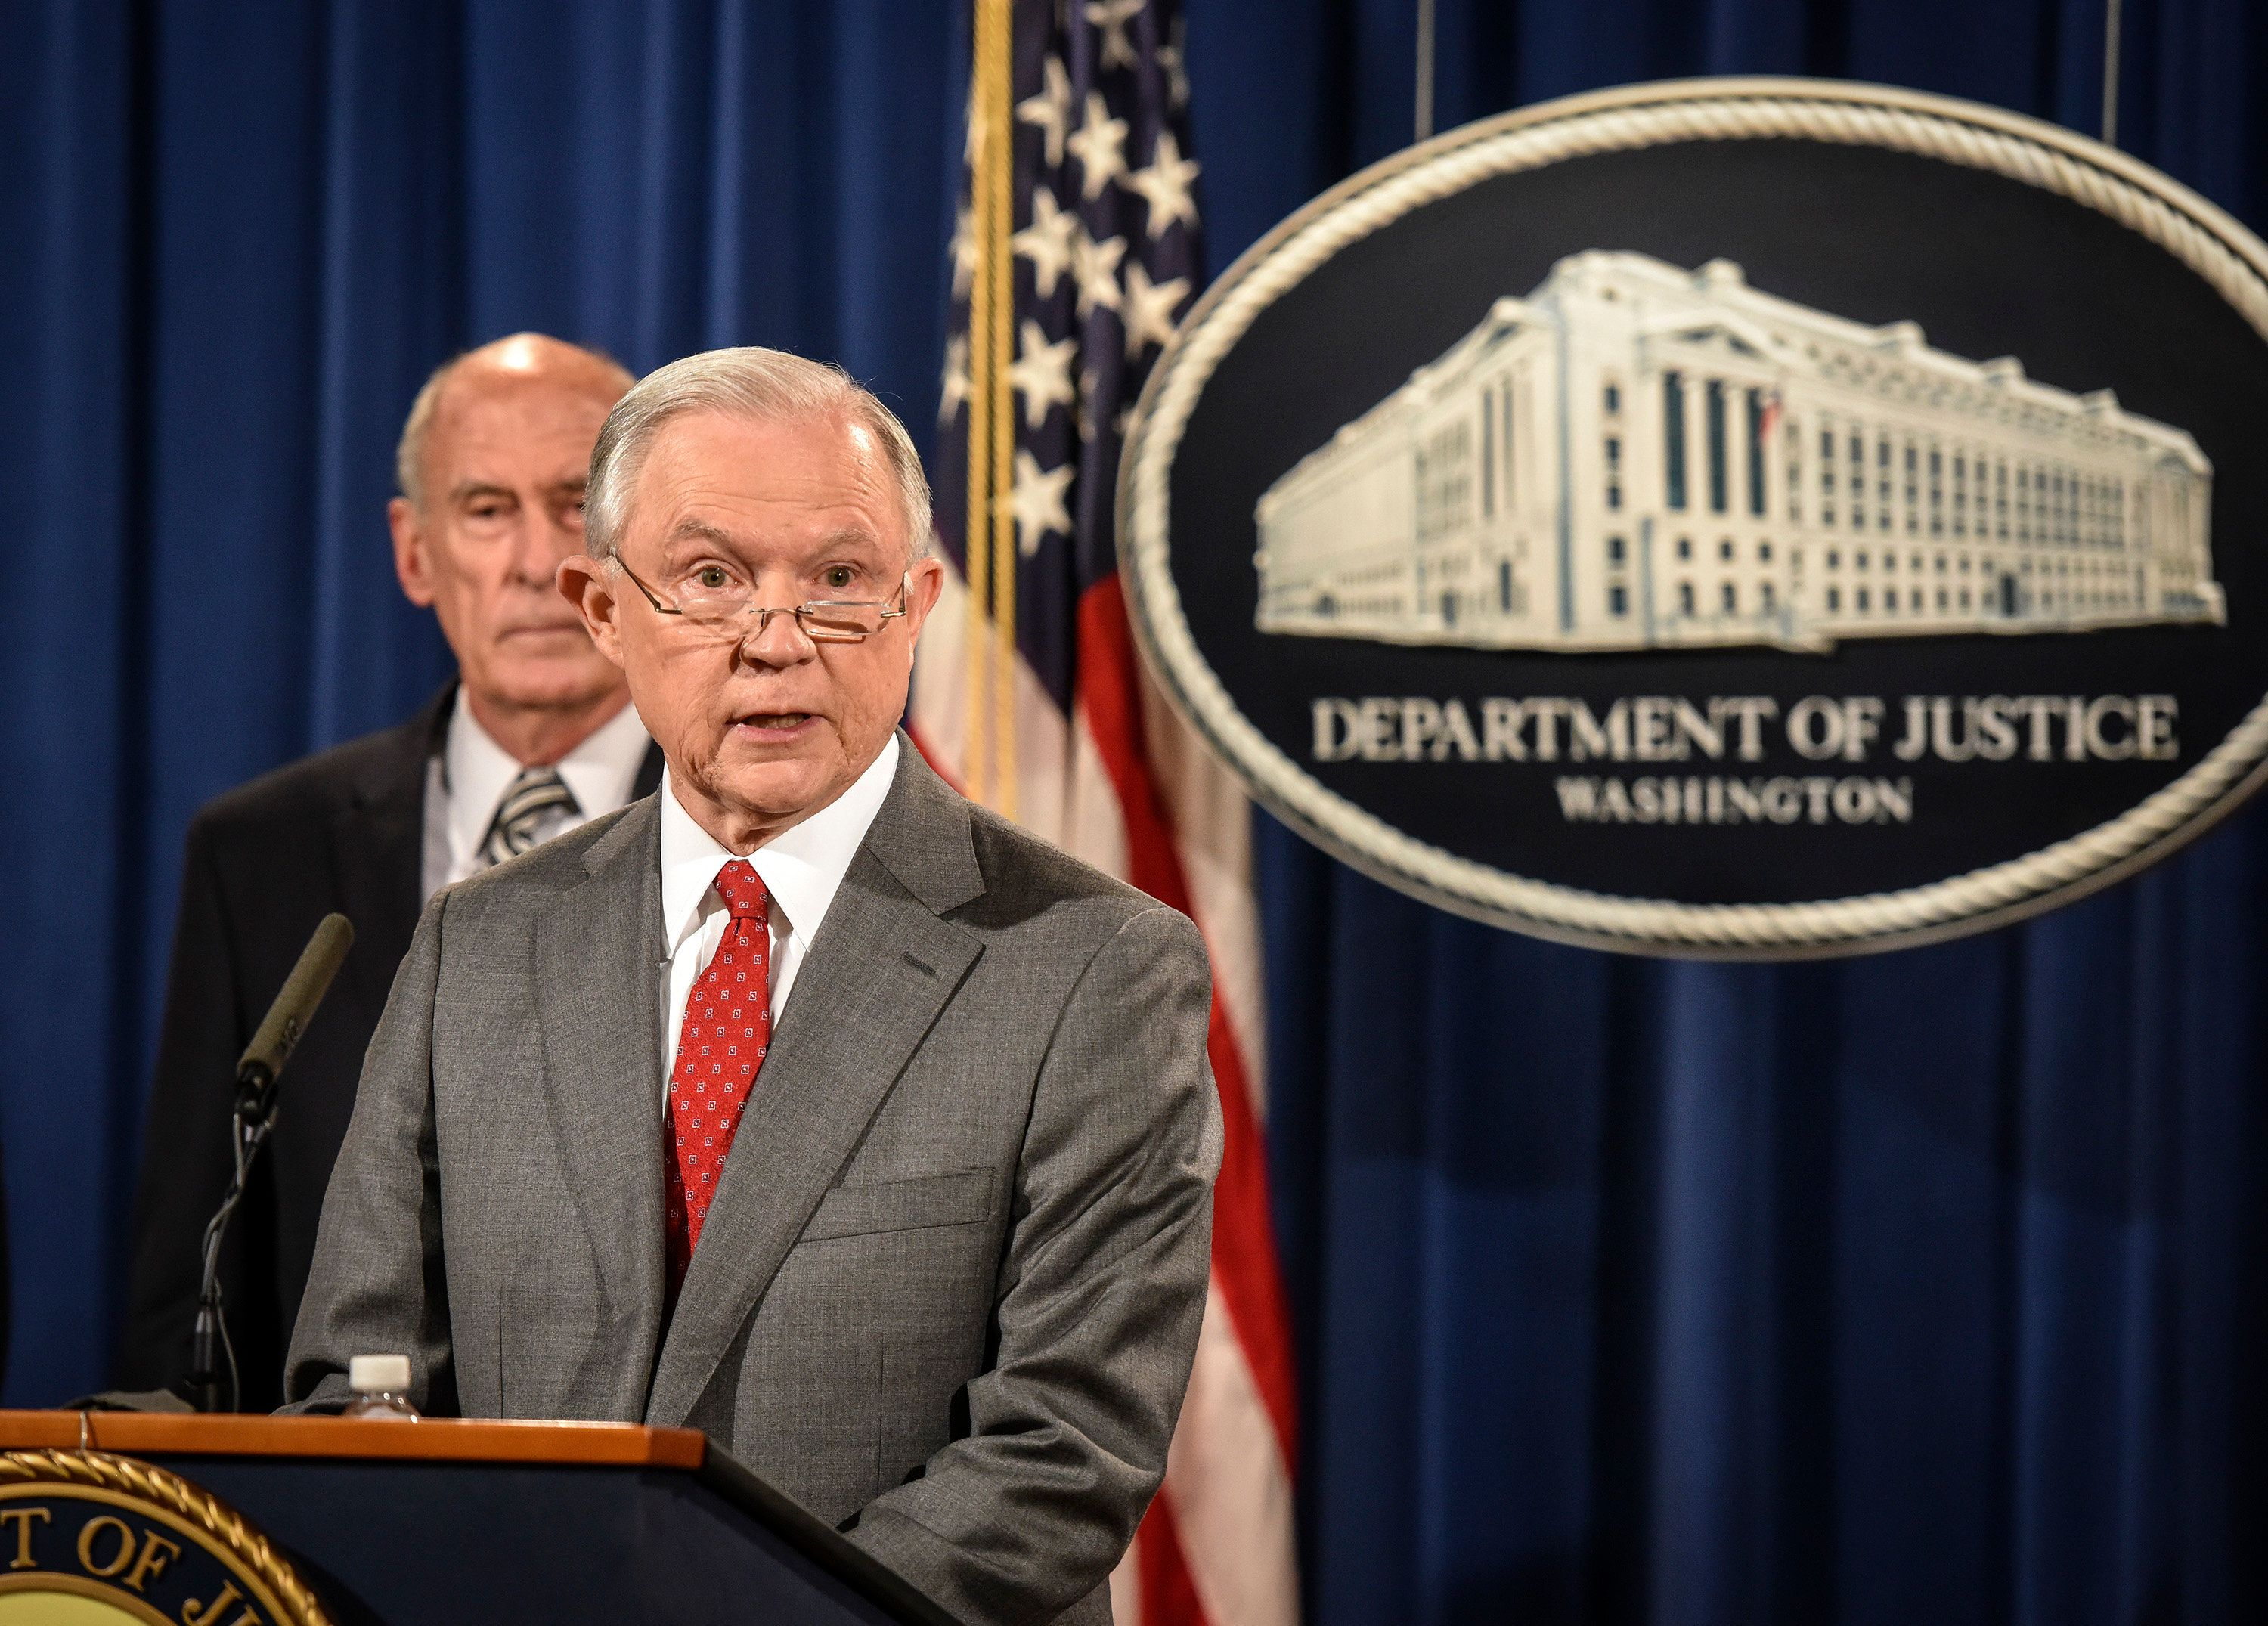 WASHINGTON, DC - AUGUST 4: Attorney General Jeff Sessions, right, holds a press conference announcing on-going leak investigations, on August, 04, 2017 in Washington, DC. Behind him is Director of National Intelligence Dan Coats. (Photo by Bill O'Leary/The Washington Post via Getty Images)